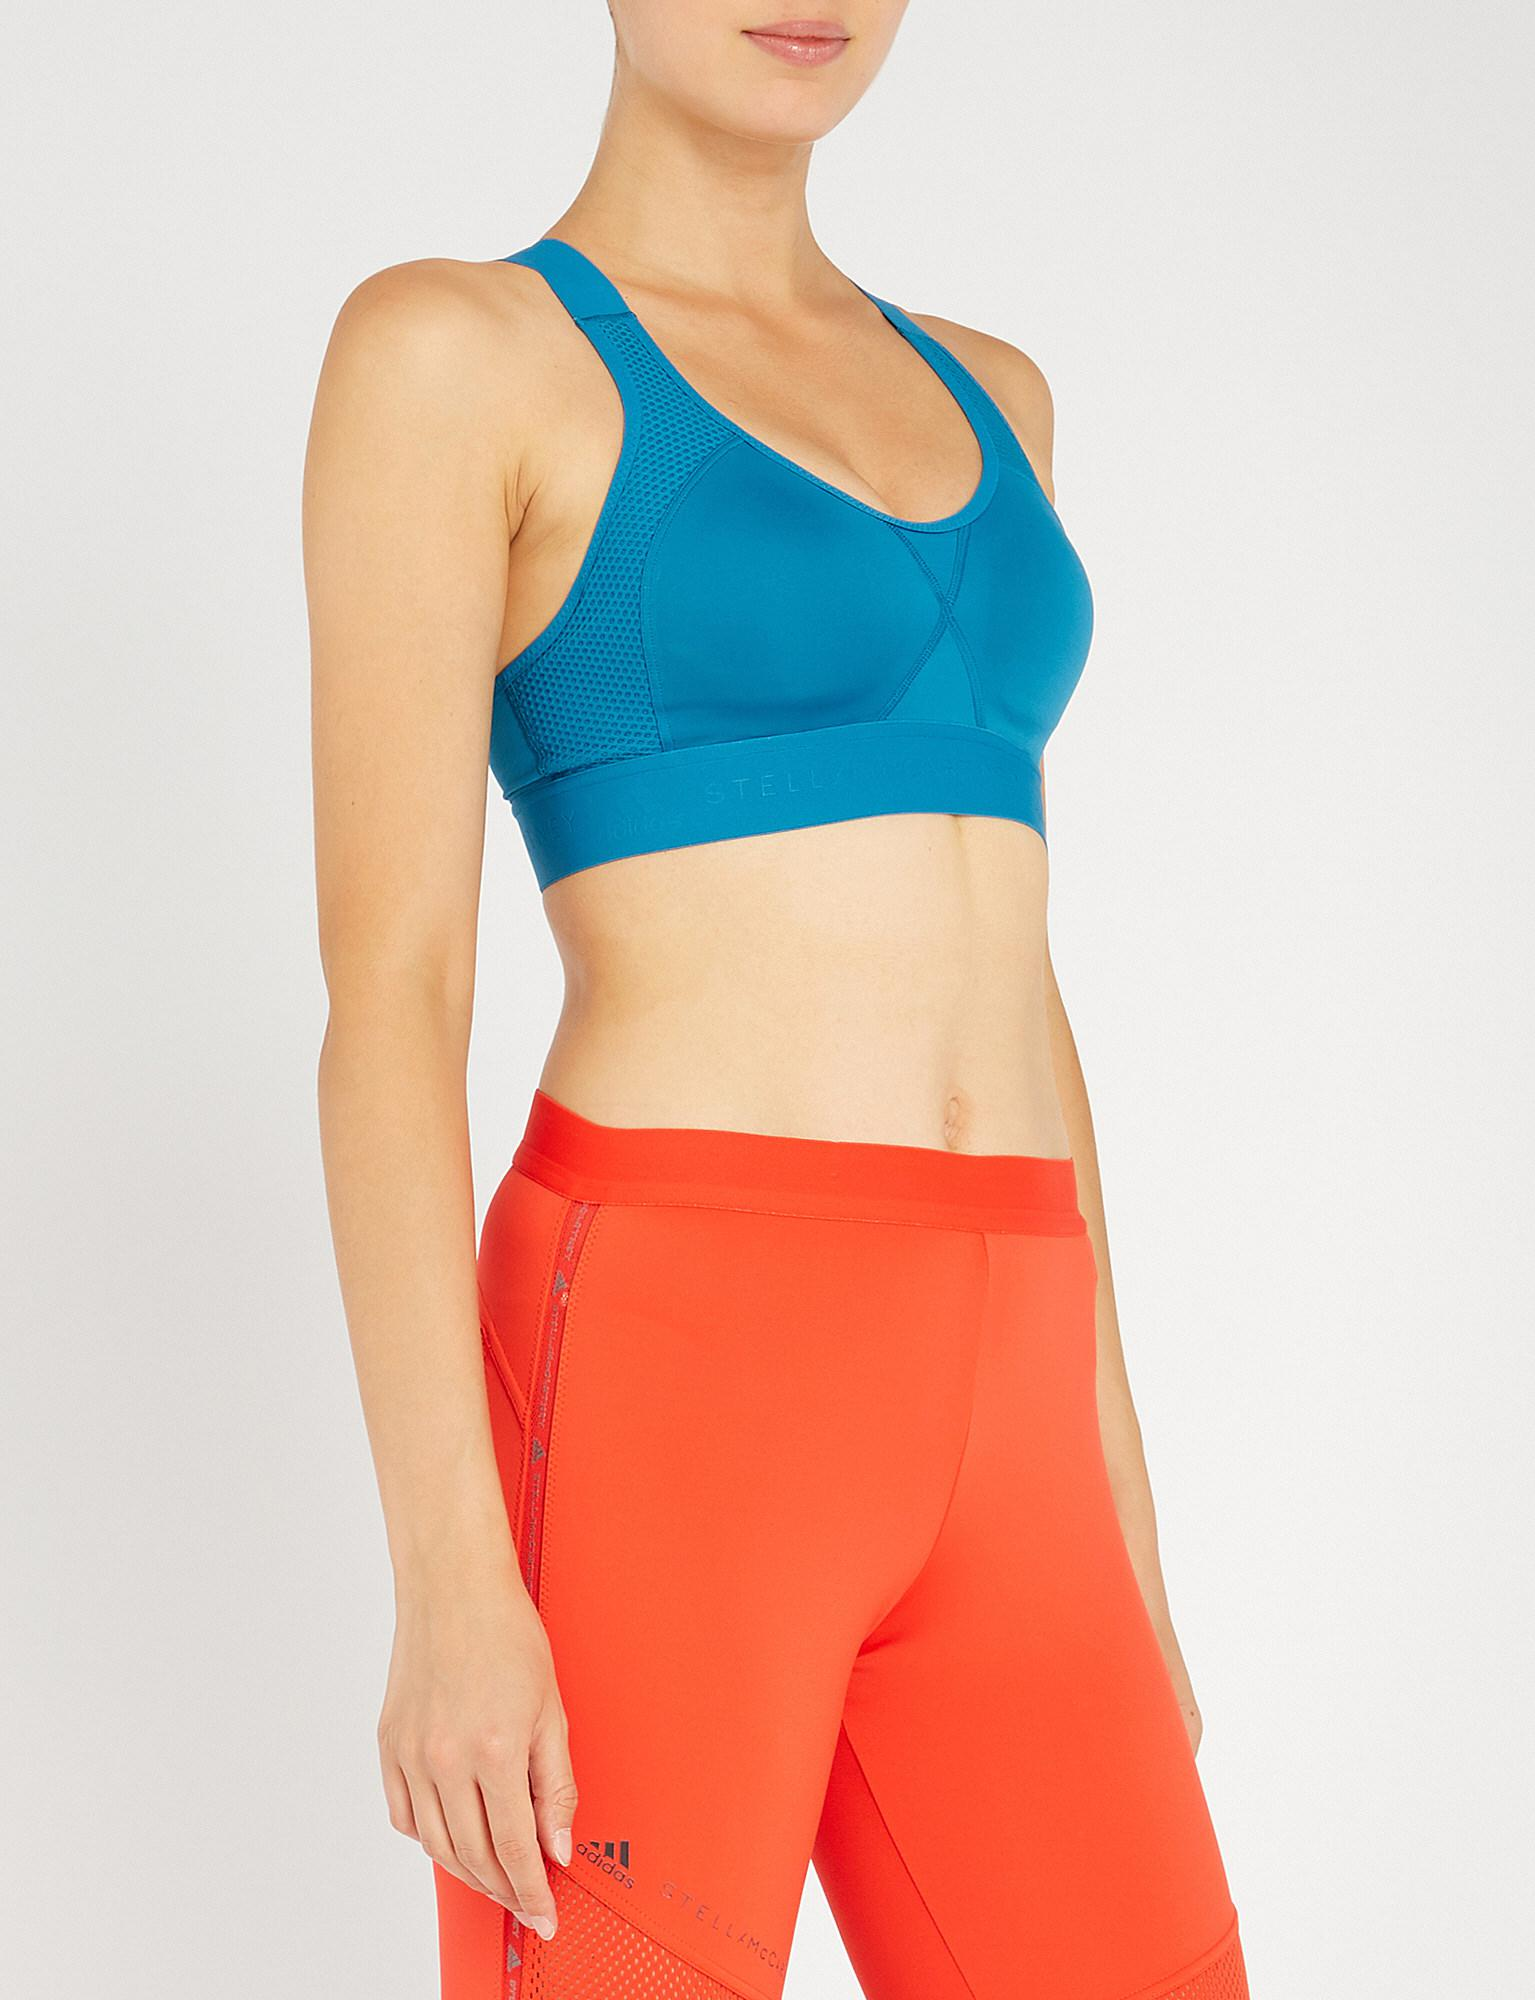 f7b1d4a9c67b3 adidas By Stella McCartney. Women s Blue Stronger For It Microfibre Sports  Bra